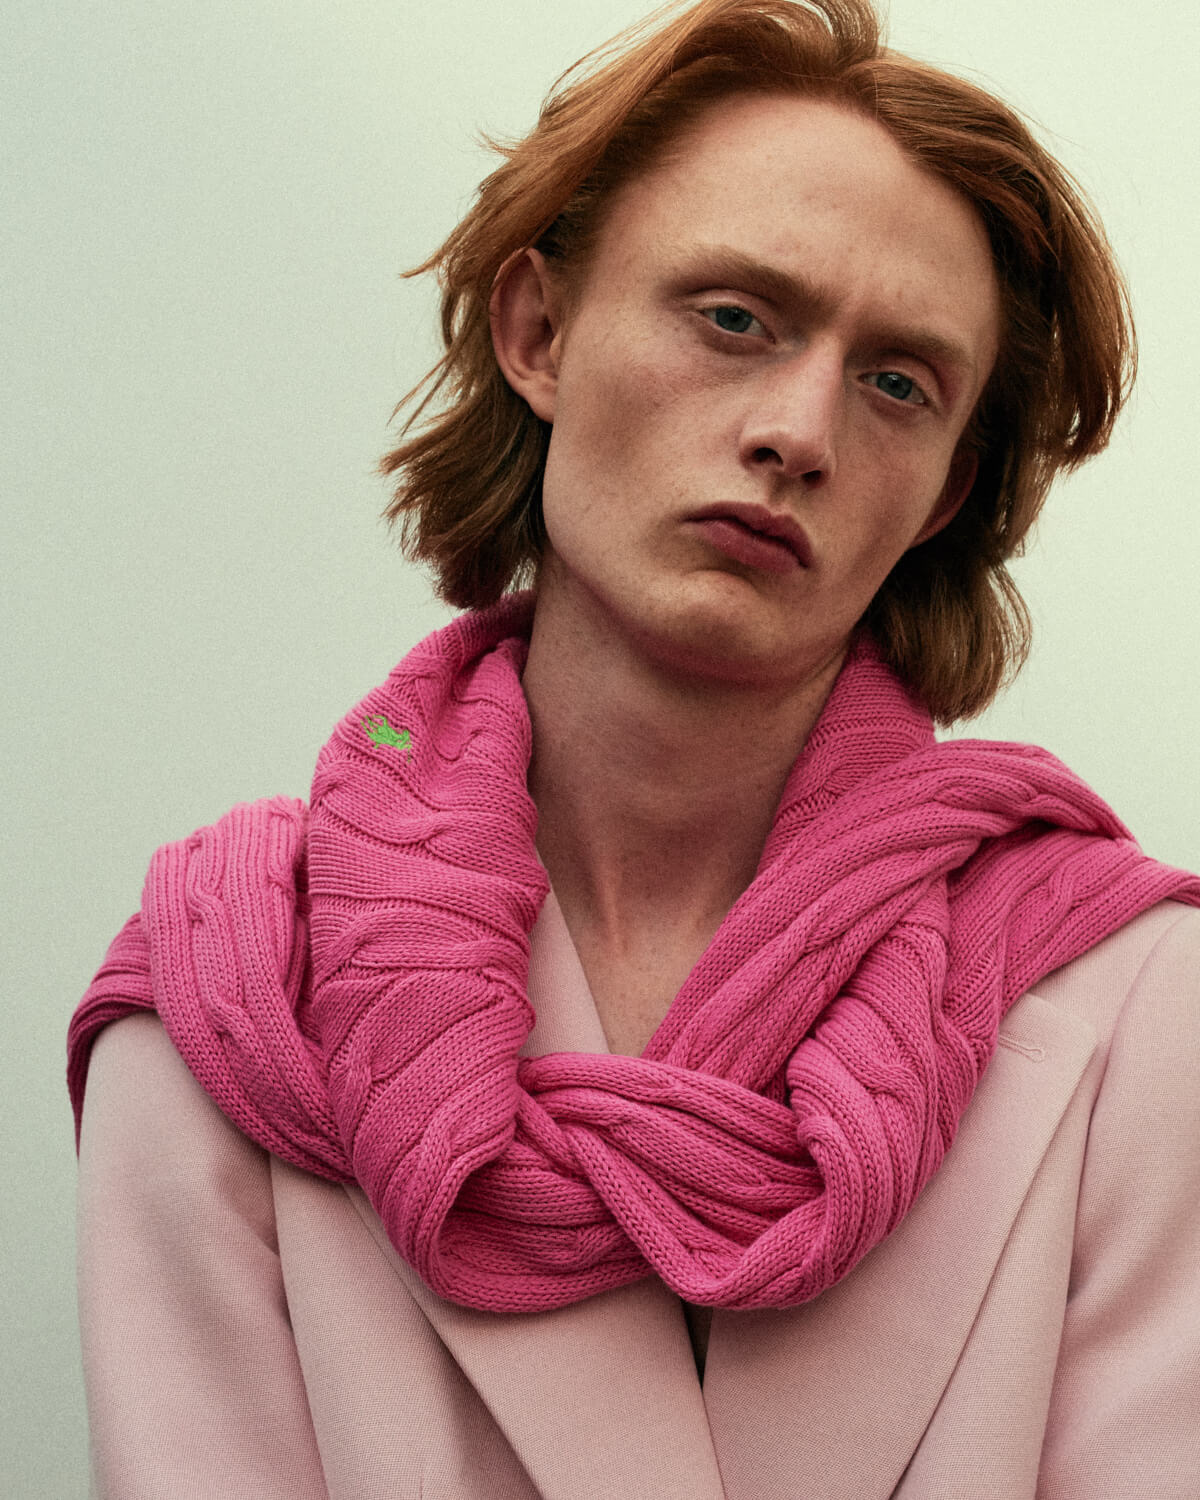 portrait photographer Tim Cole shoots man in pink jumper